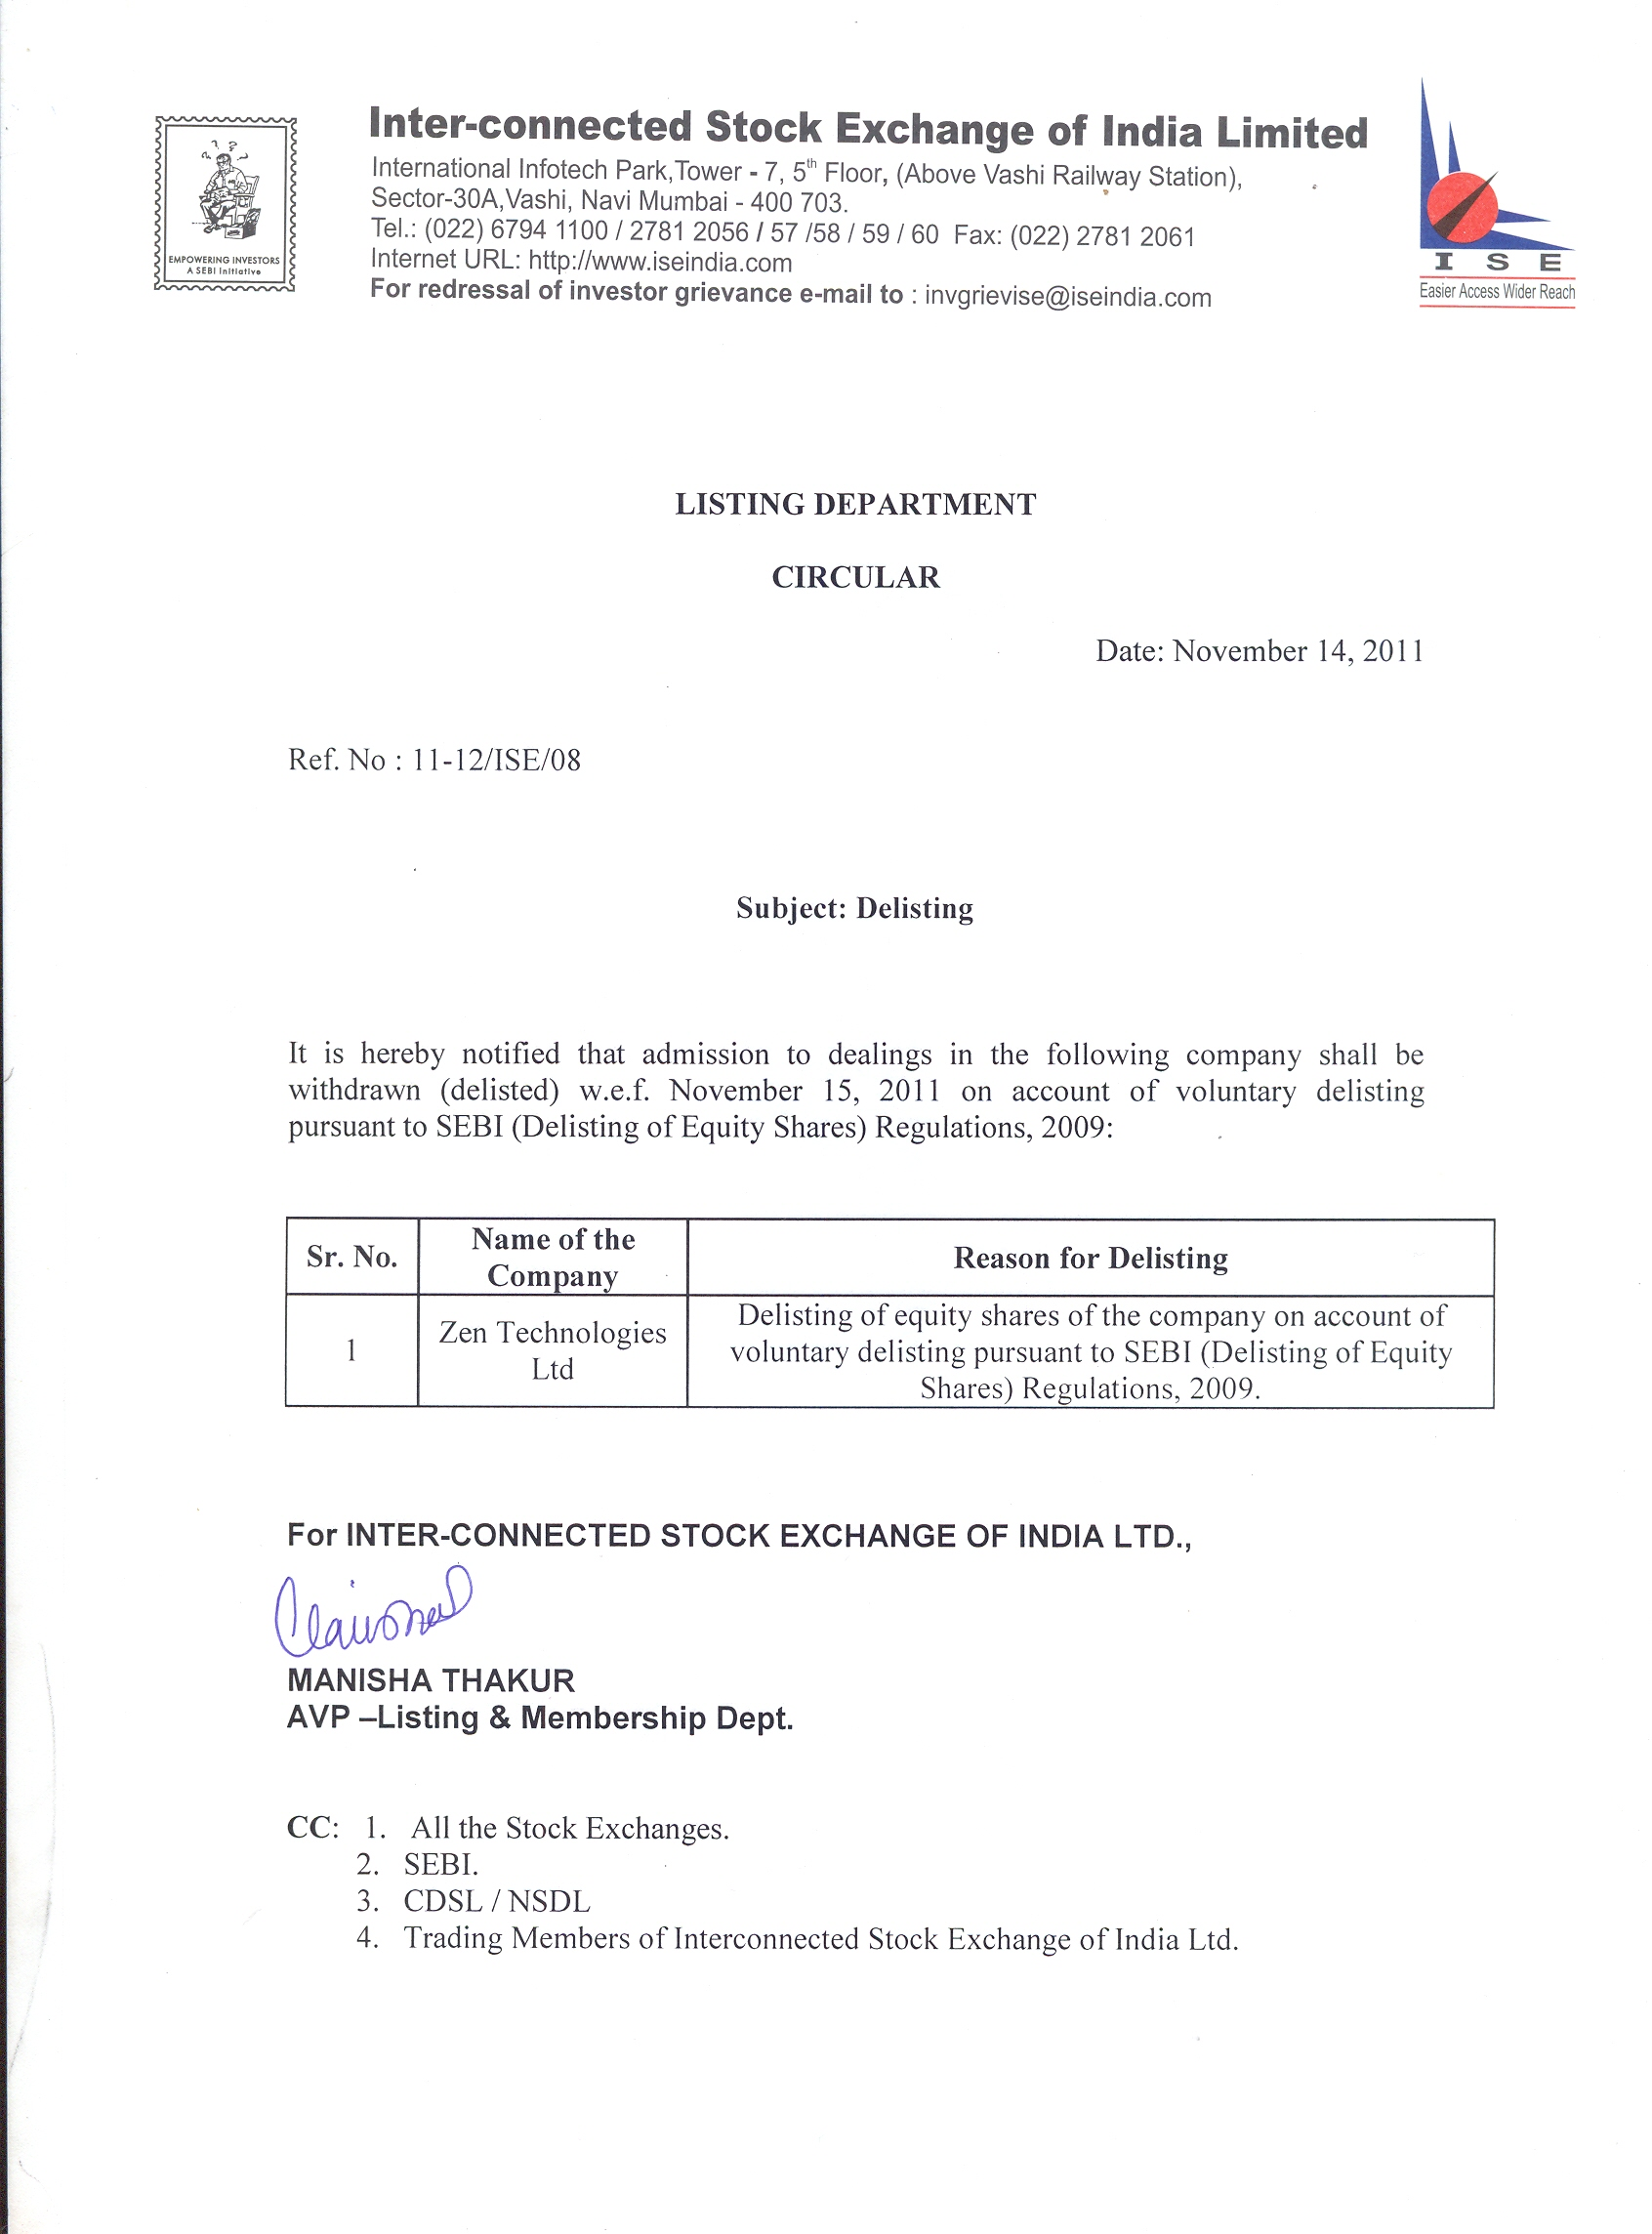 Inter Connected Stock Exchange Of India Ltd